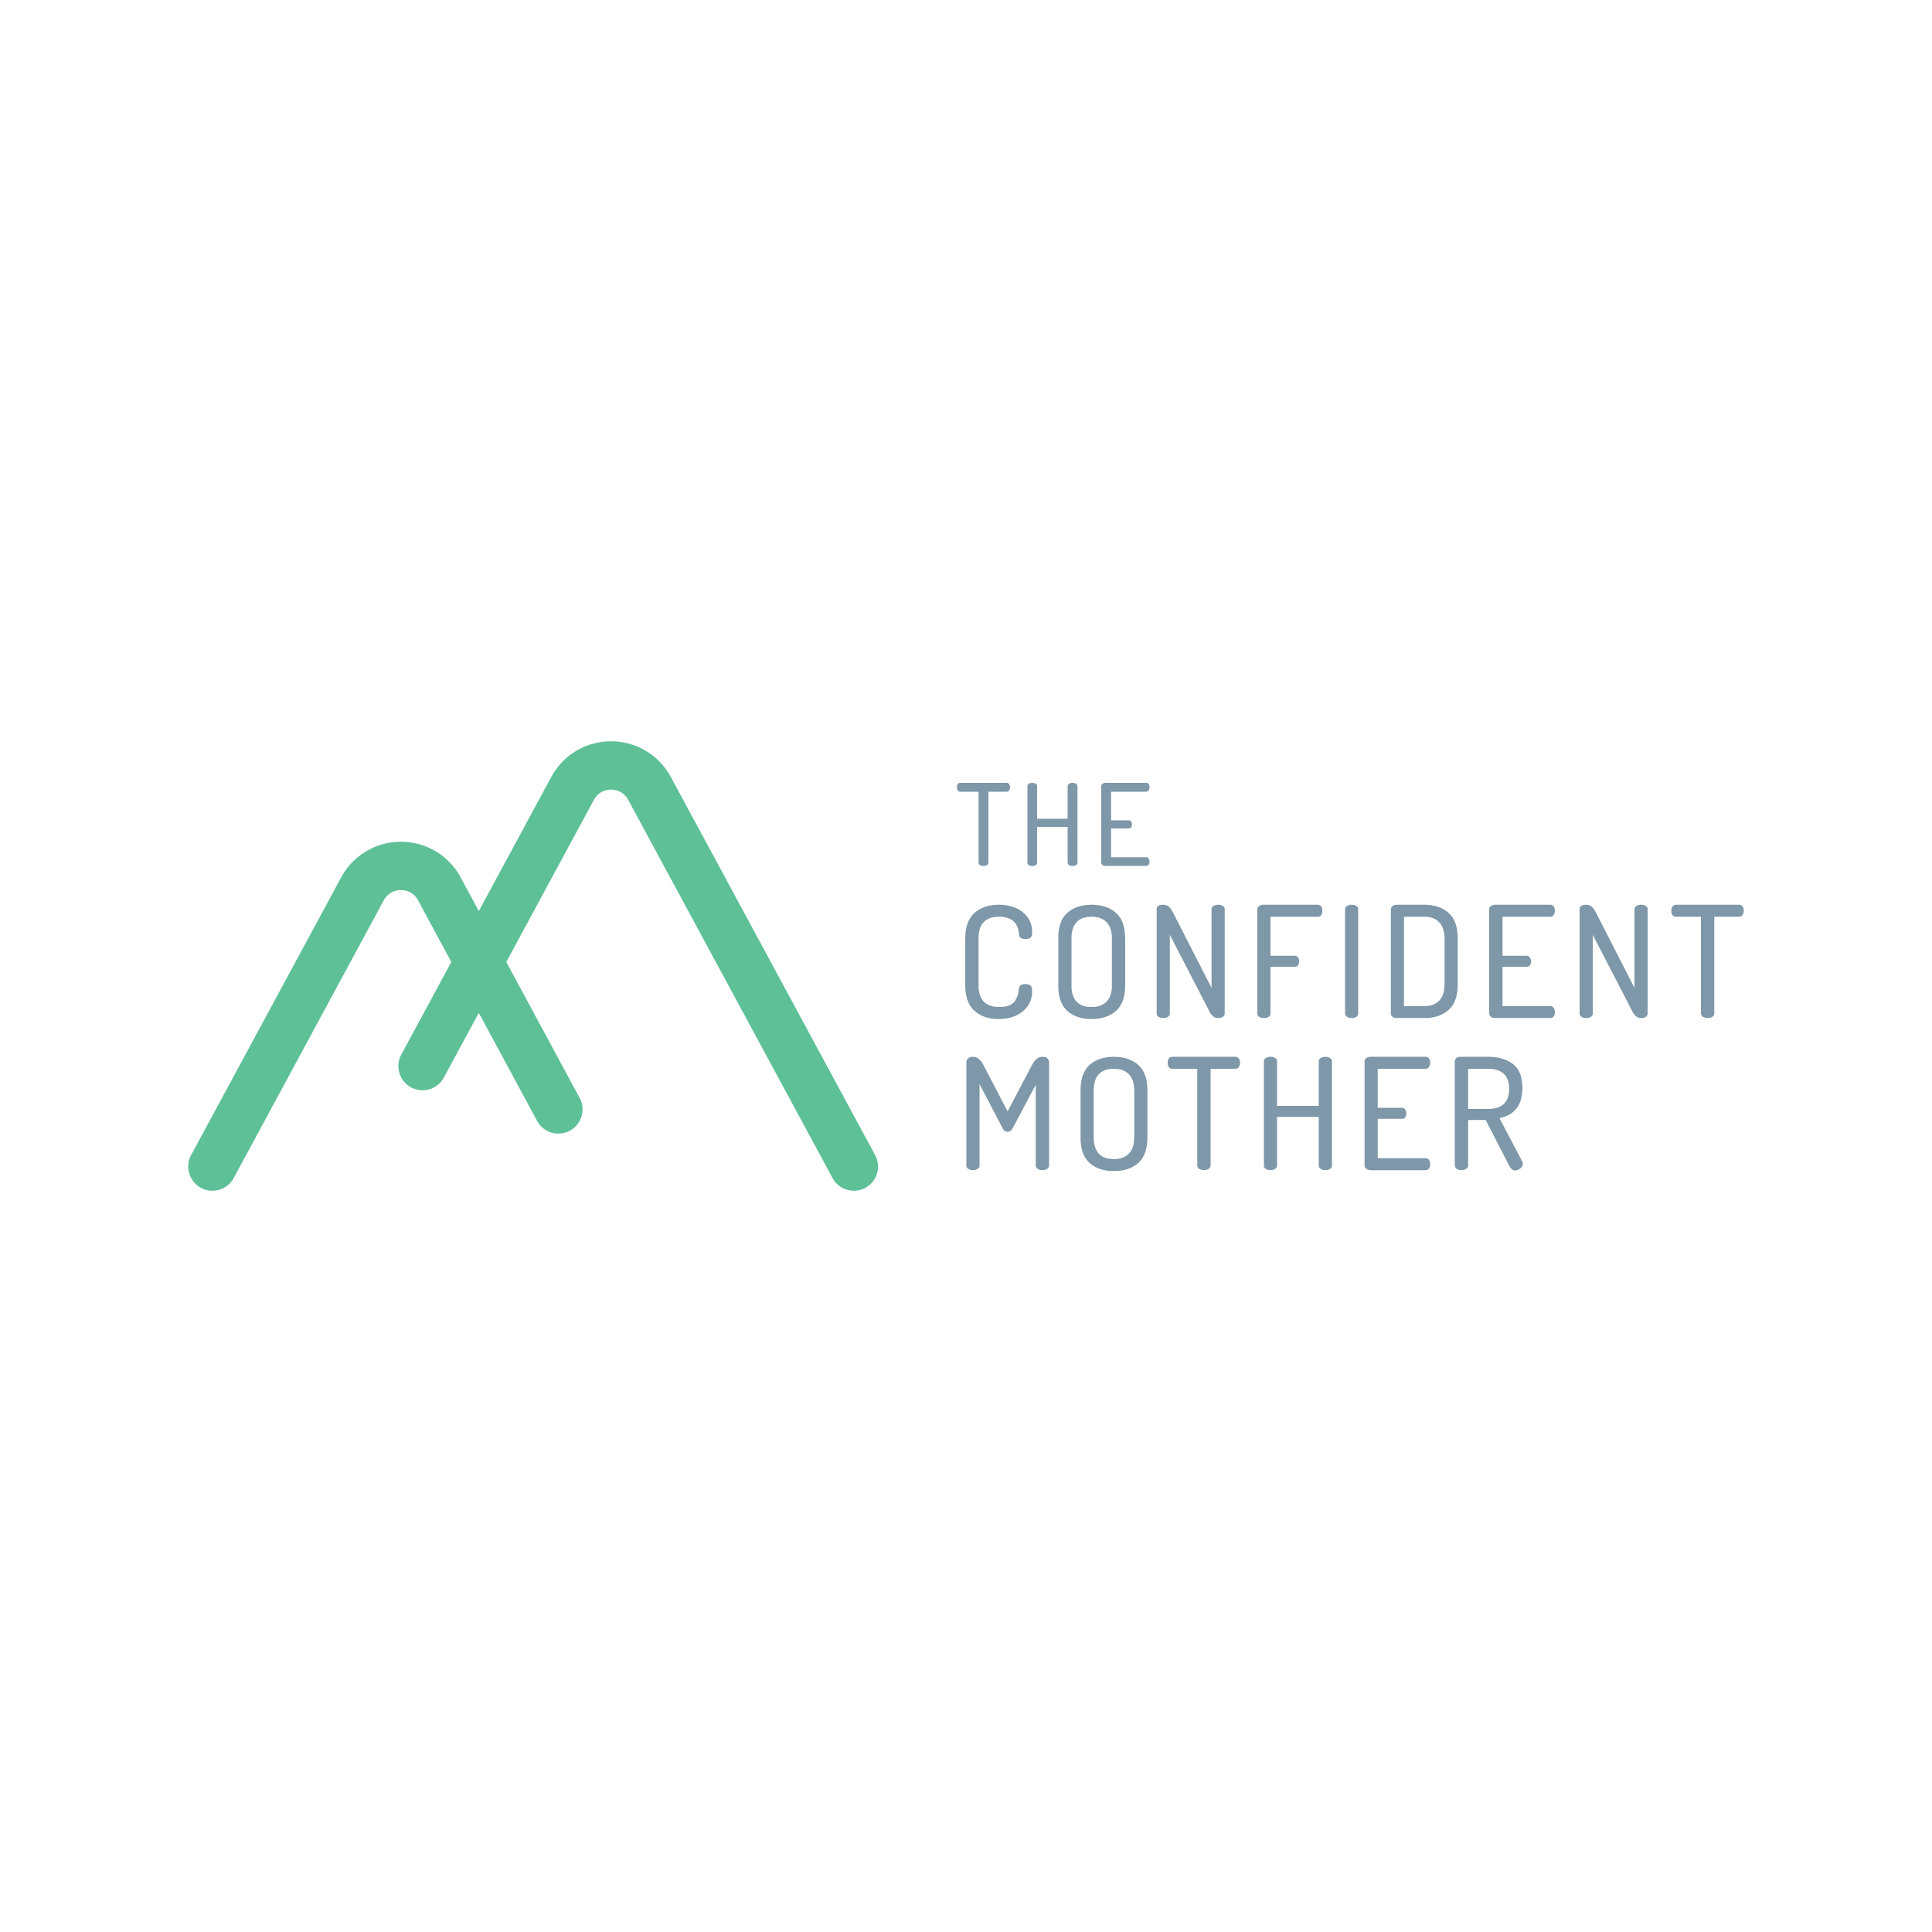 The Confident Mother